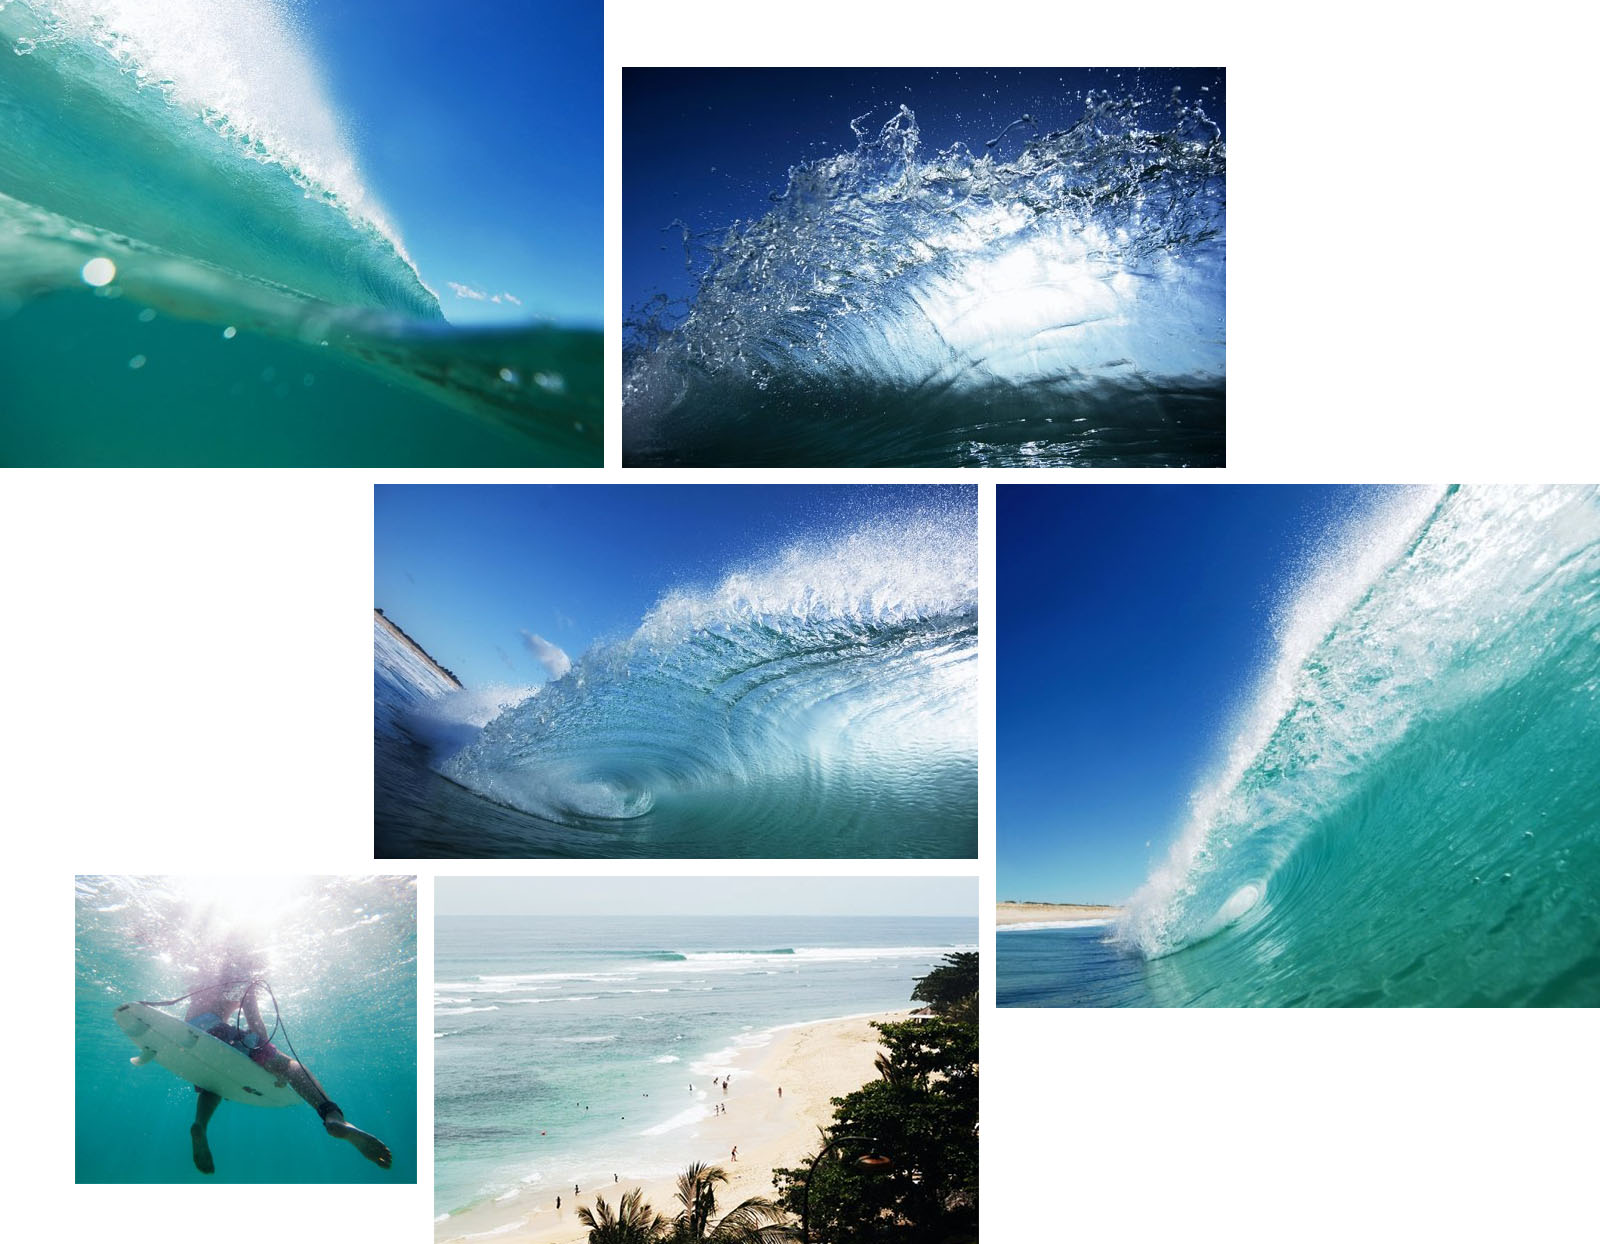 Aquatech housing surf photography